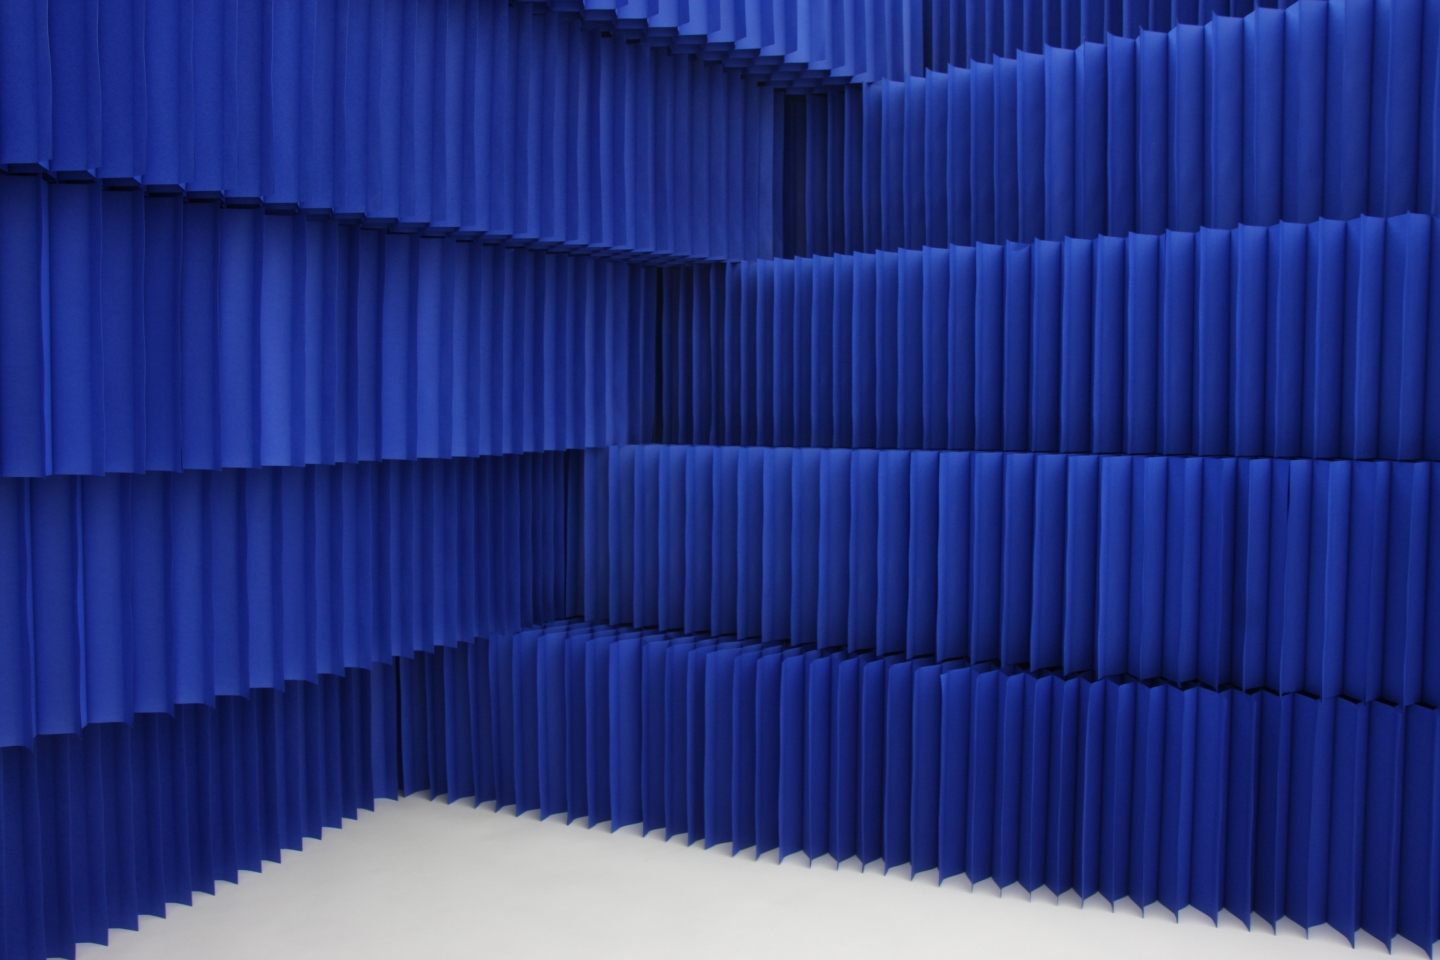 indigo blue paper blocks stacked to form a textural space partition with acoustic attenuation properties